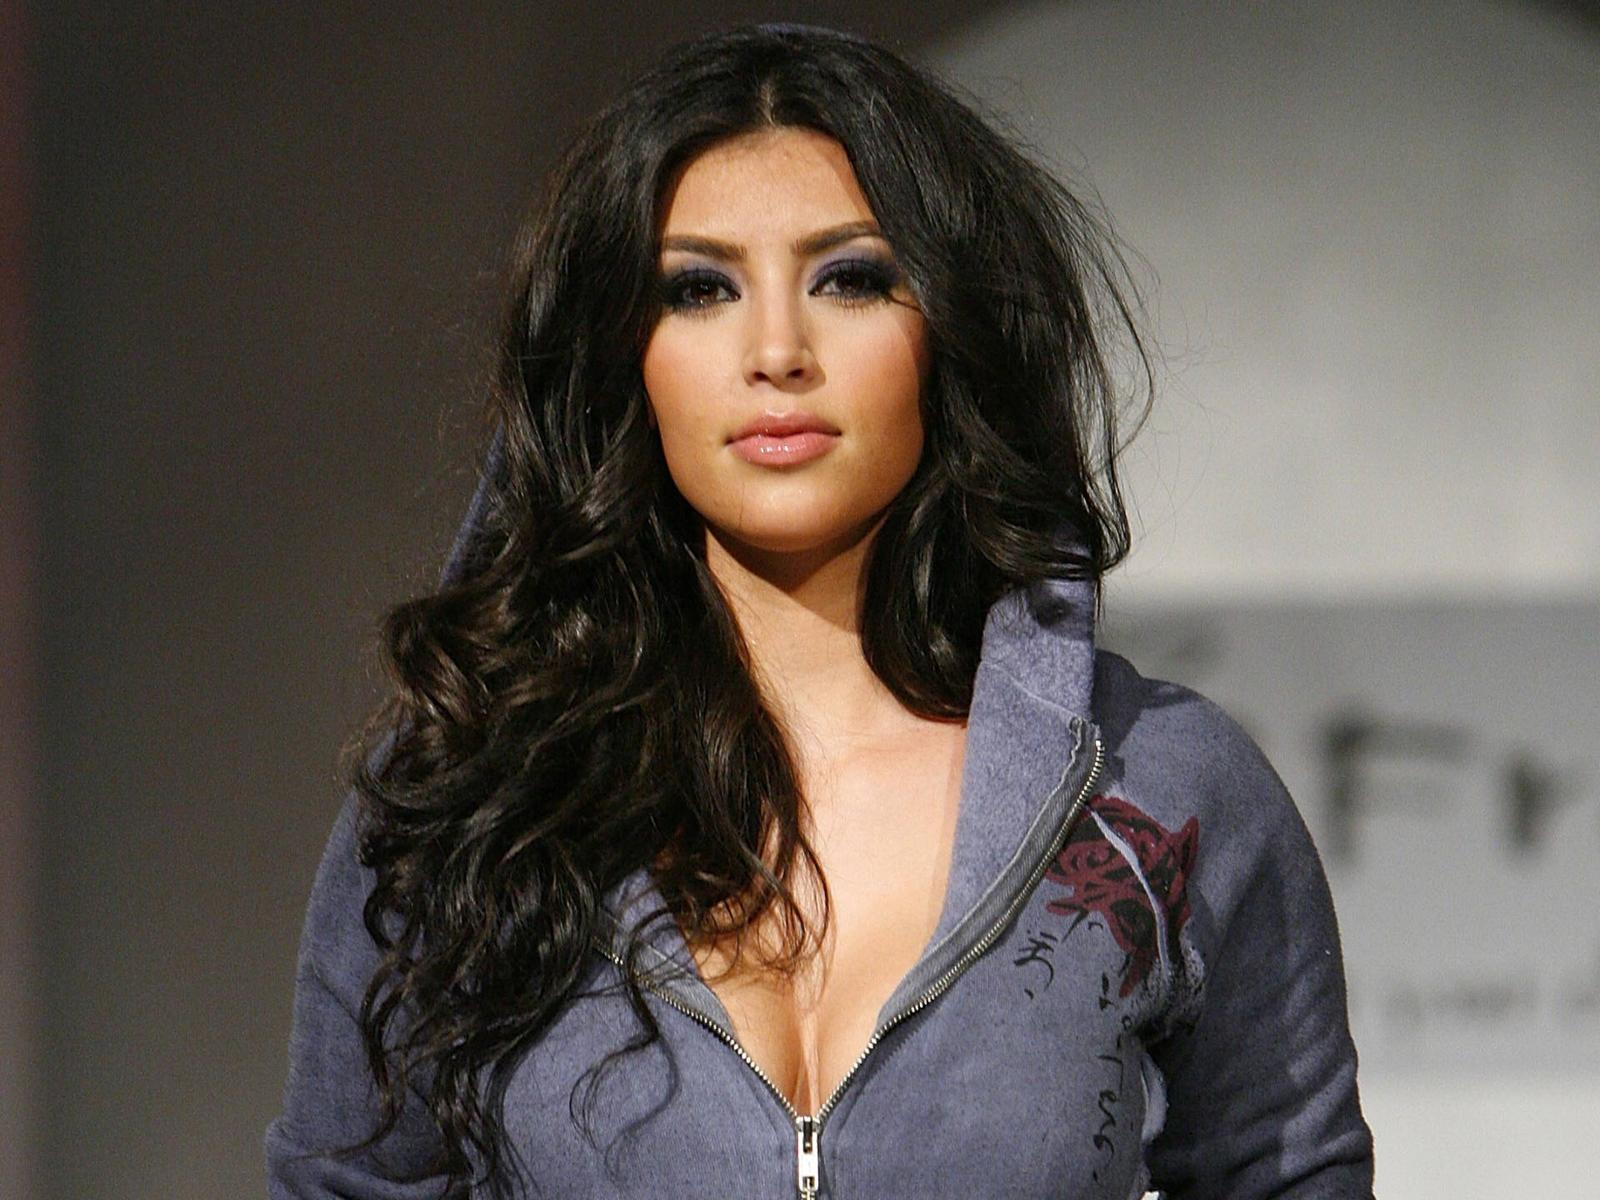 http://1.bp.blogspot.com/-VC7YScMQgOk/UEjIgo_33TI/AAAAAAAAOw4/Q14dH5a-Tzg/s1600/The-best-top-desktop-kim-kardashian-wallpapers-kim-kardashian-wallpaper-hd-15.jpg